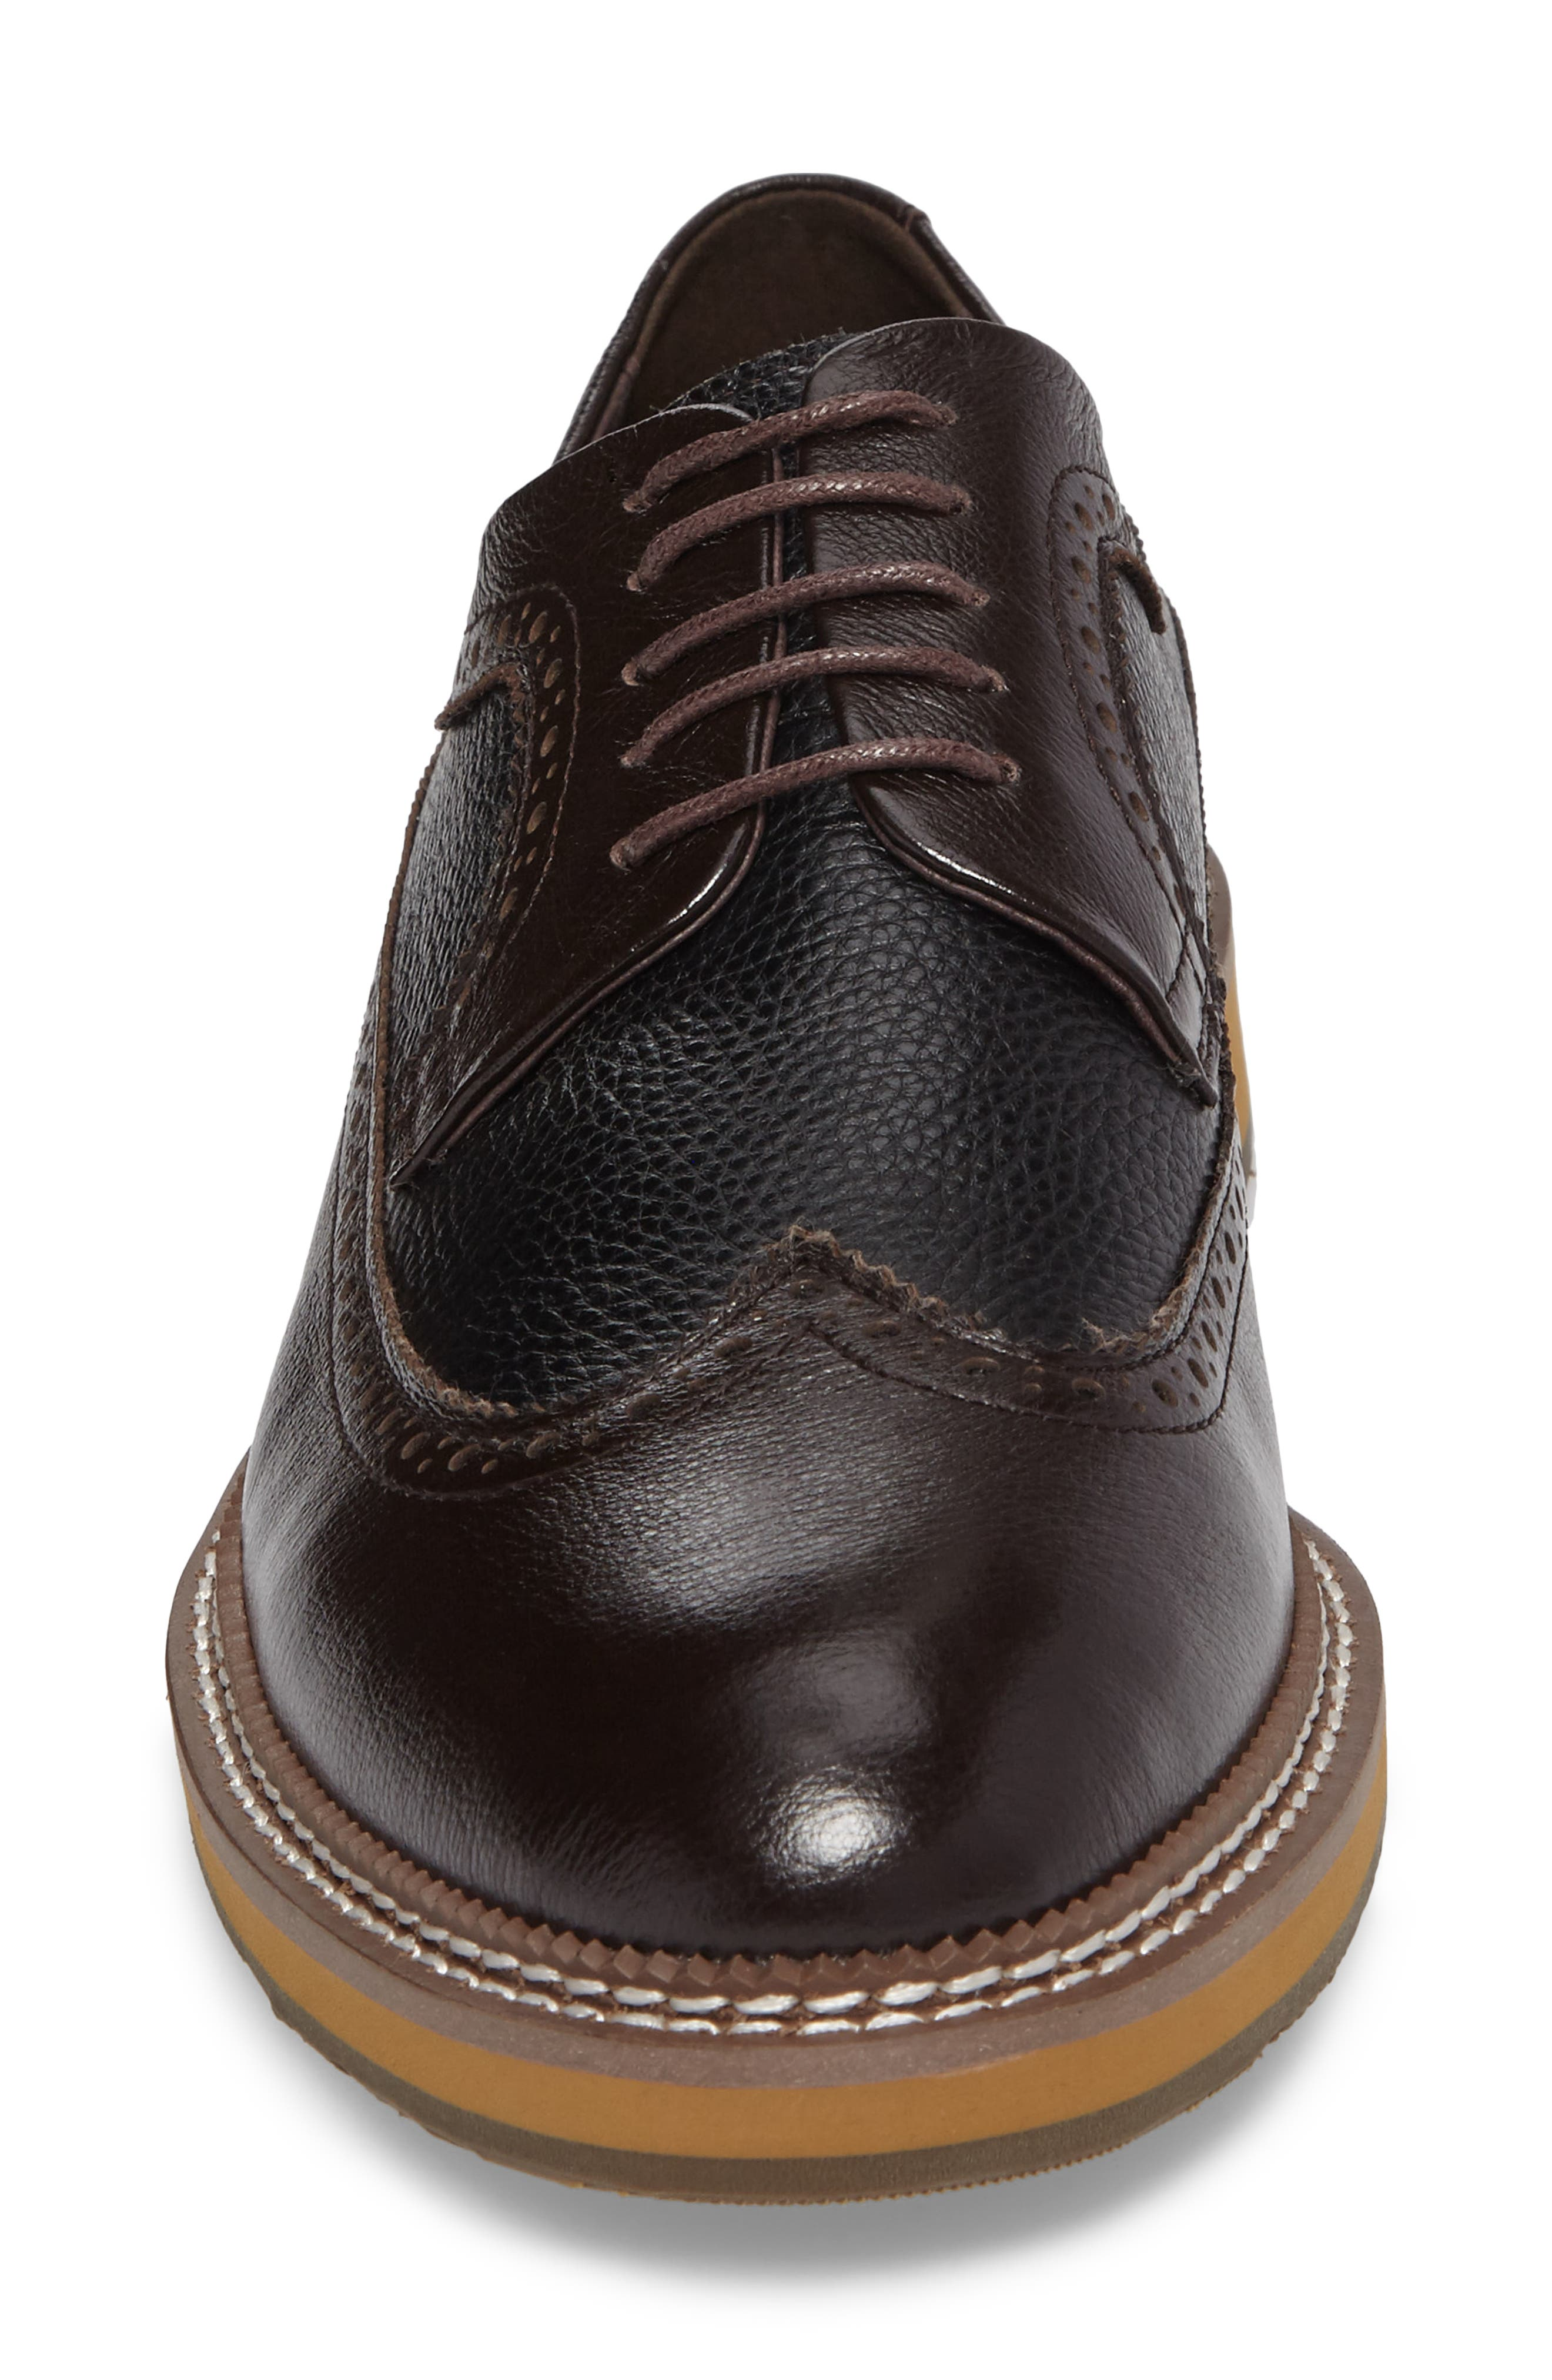 Fouquet Wingtip Derby,                             Alternate thumbnail 4, color,                             Brown Leather